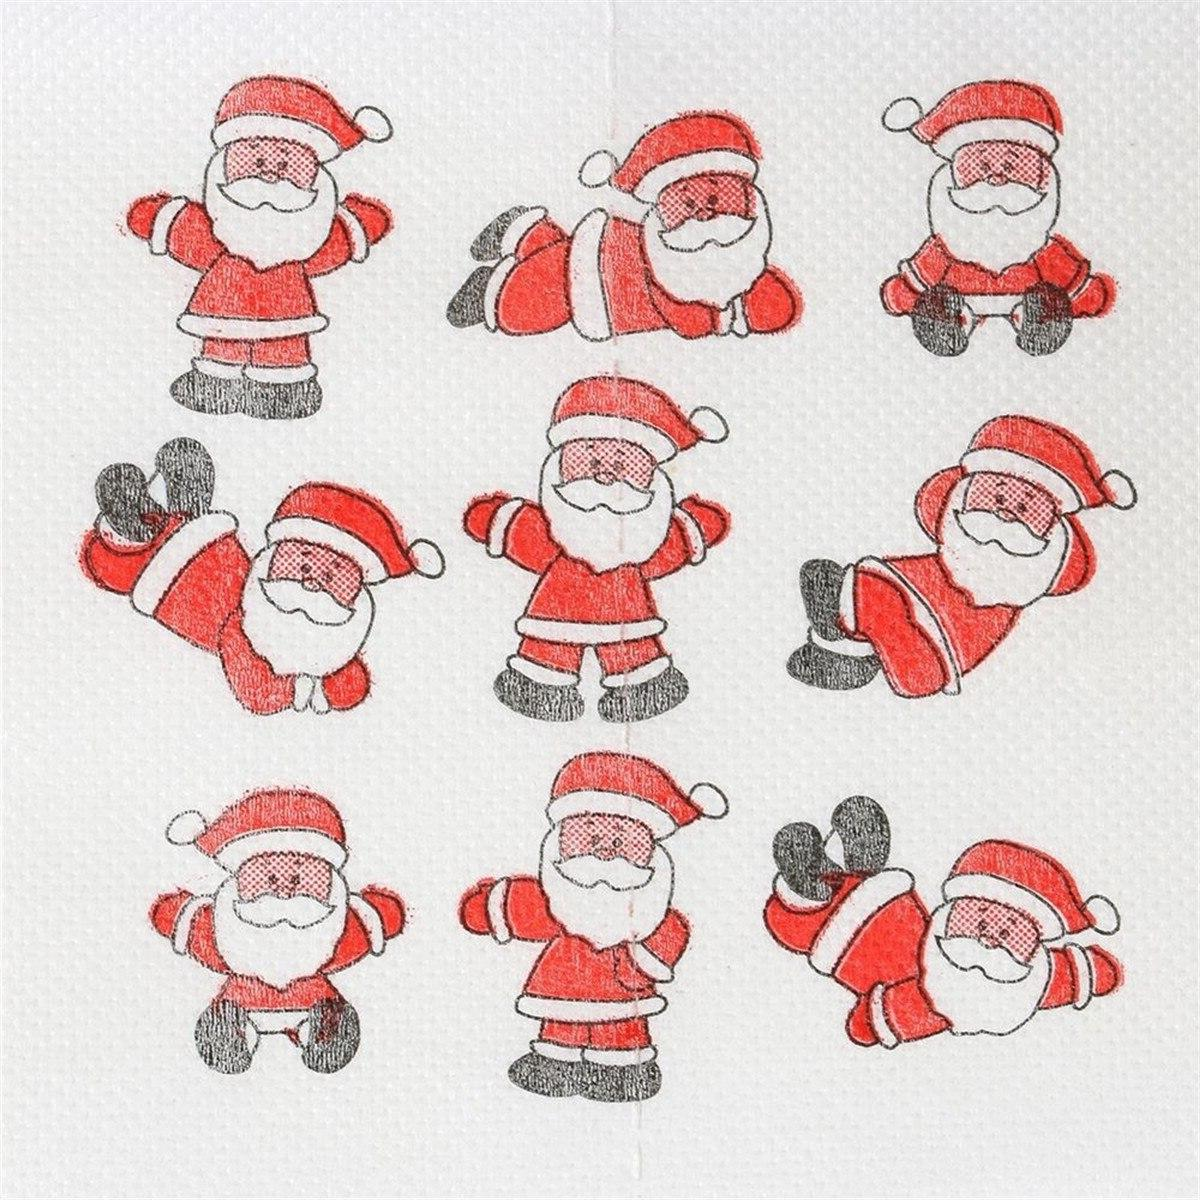 Christmas Santa Claus Roll Tissue Christmas Decorations Home DIY